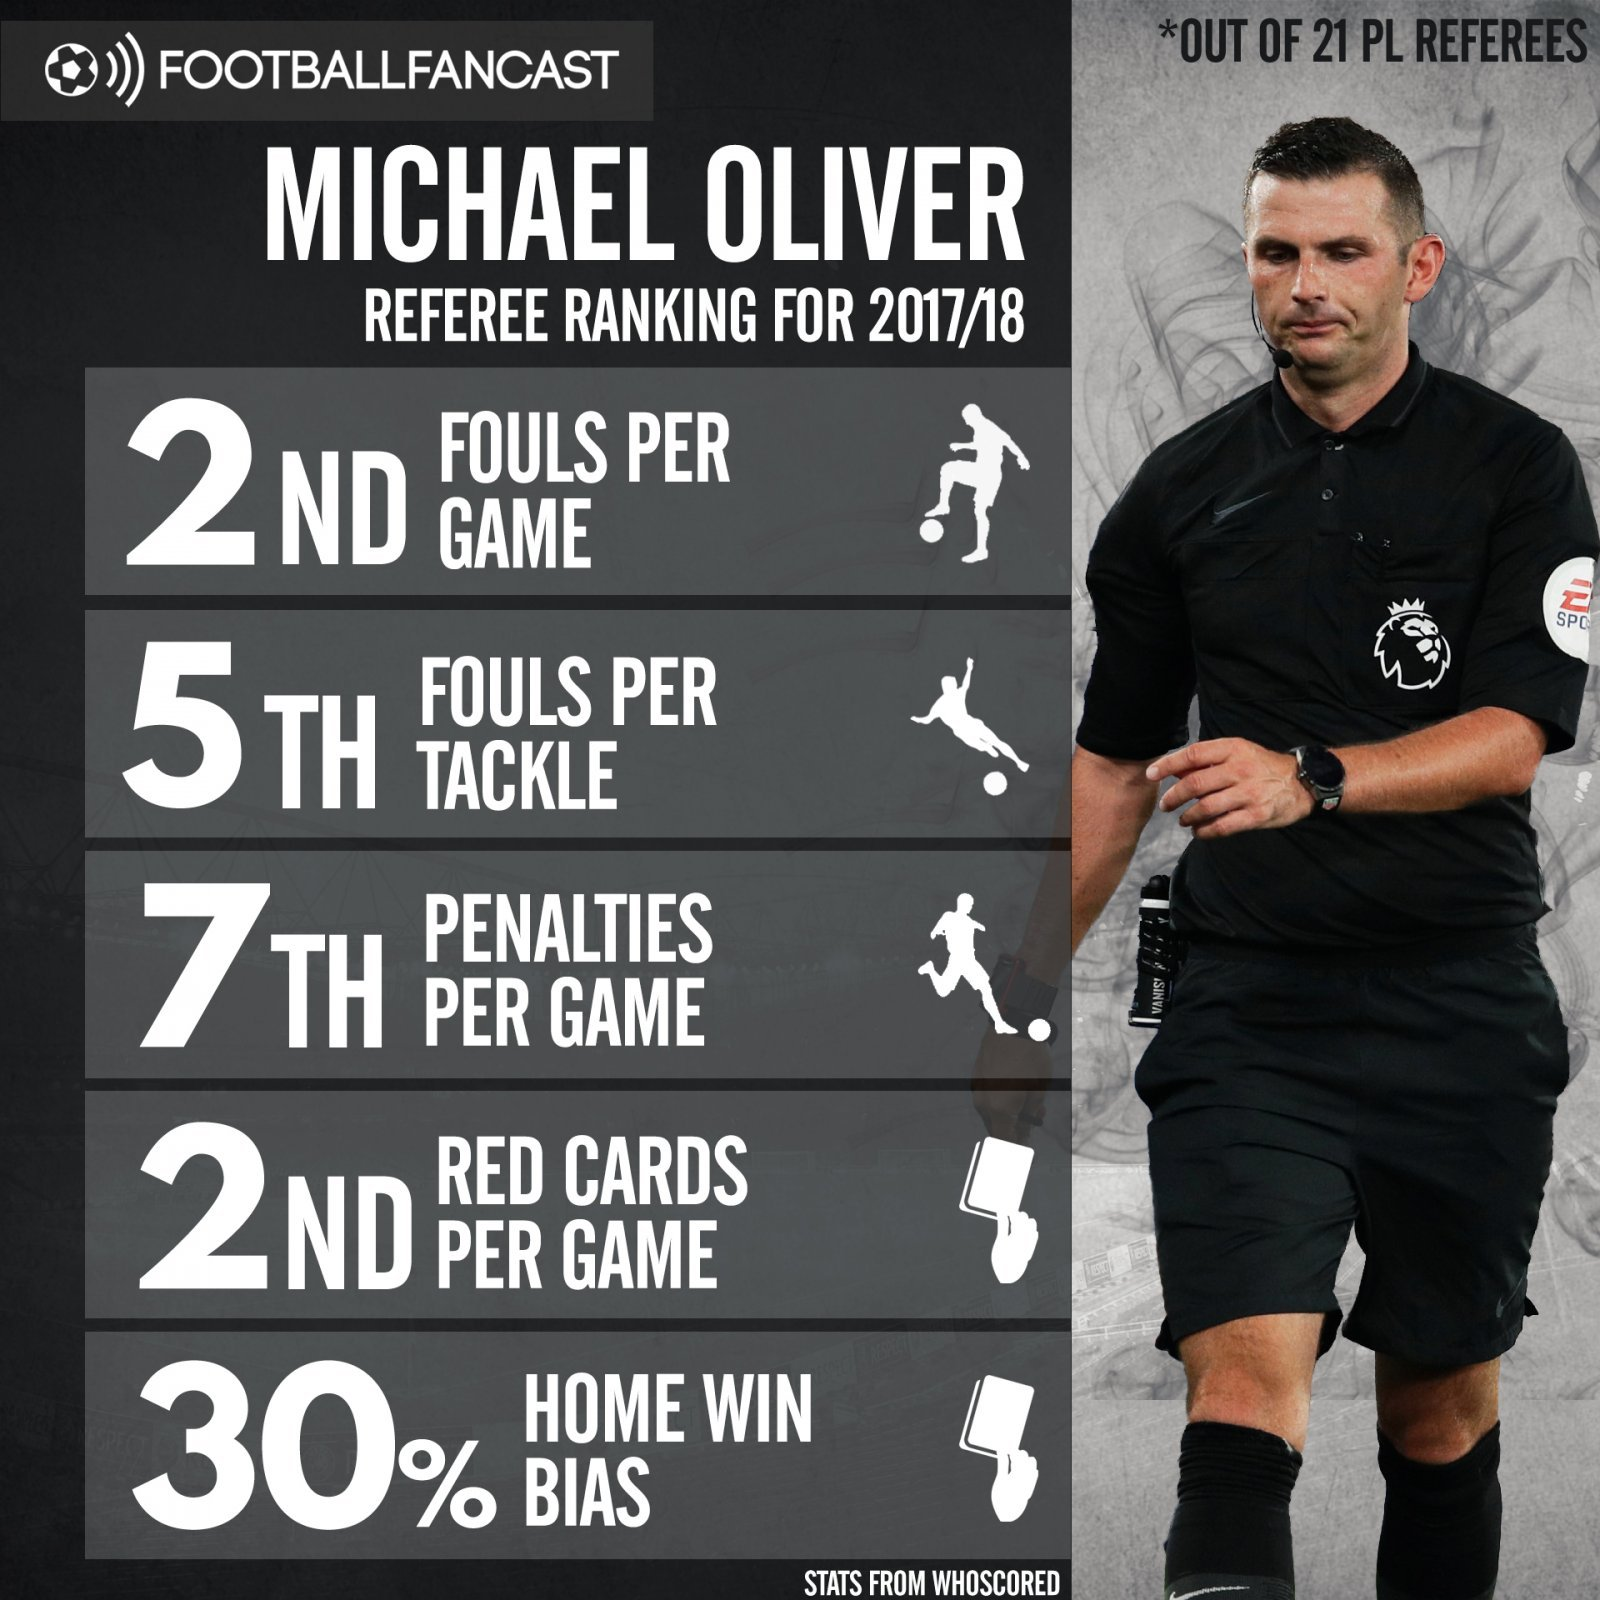 Michael Oliver's refereeing statistics